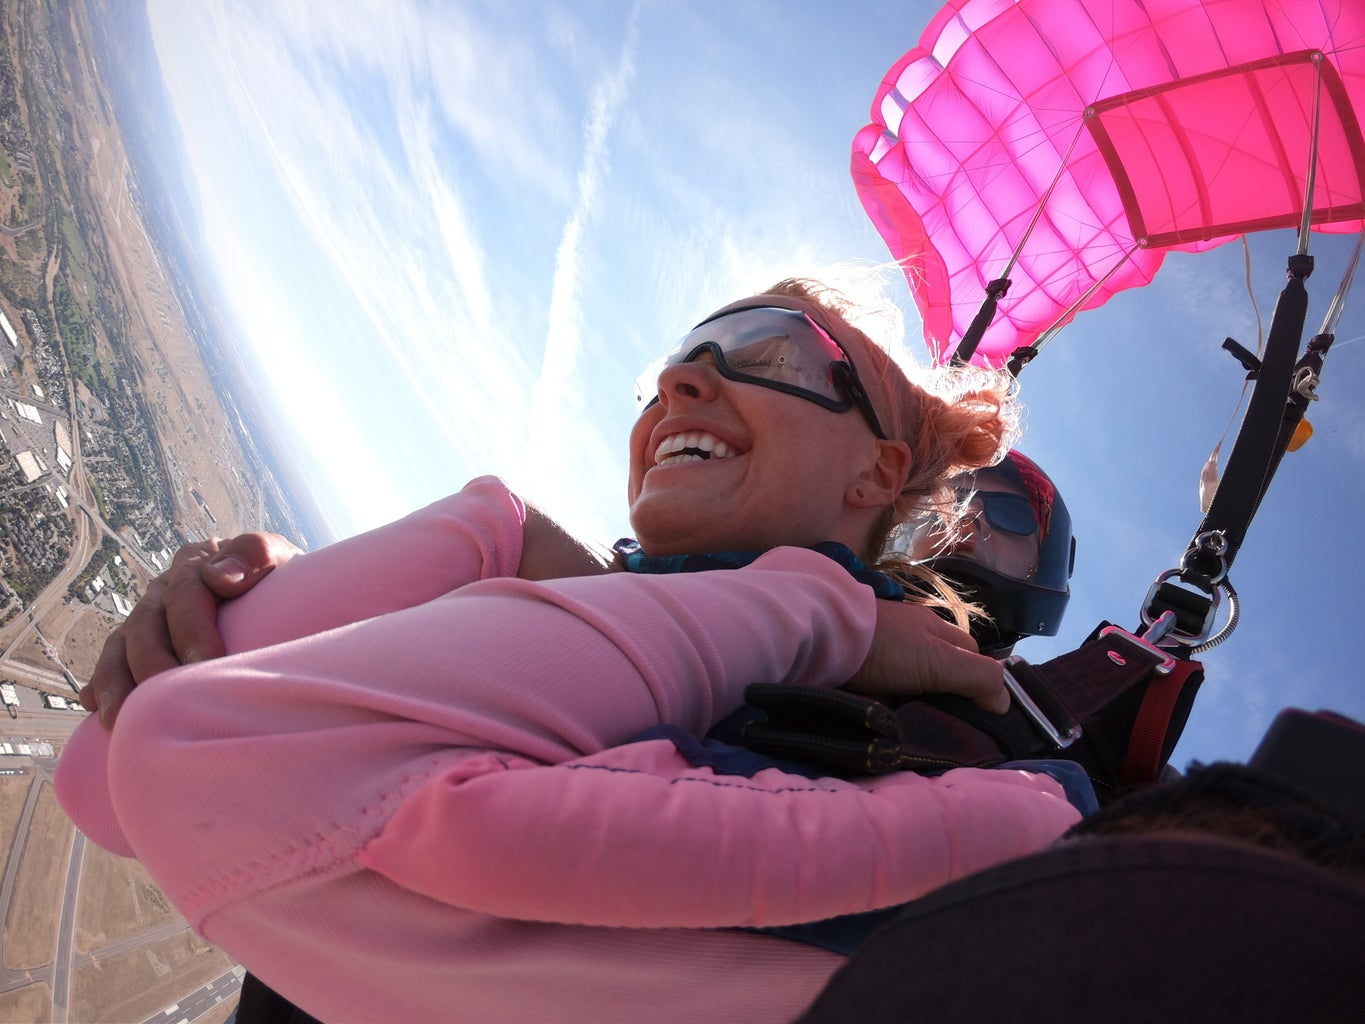 Madison Skydiving with her pink parachute